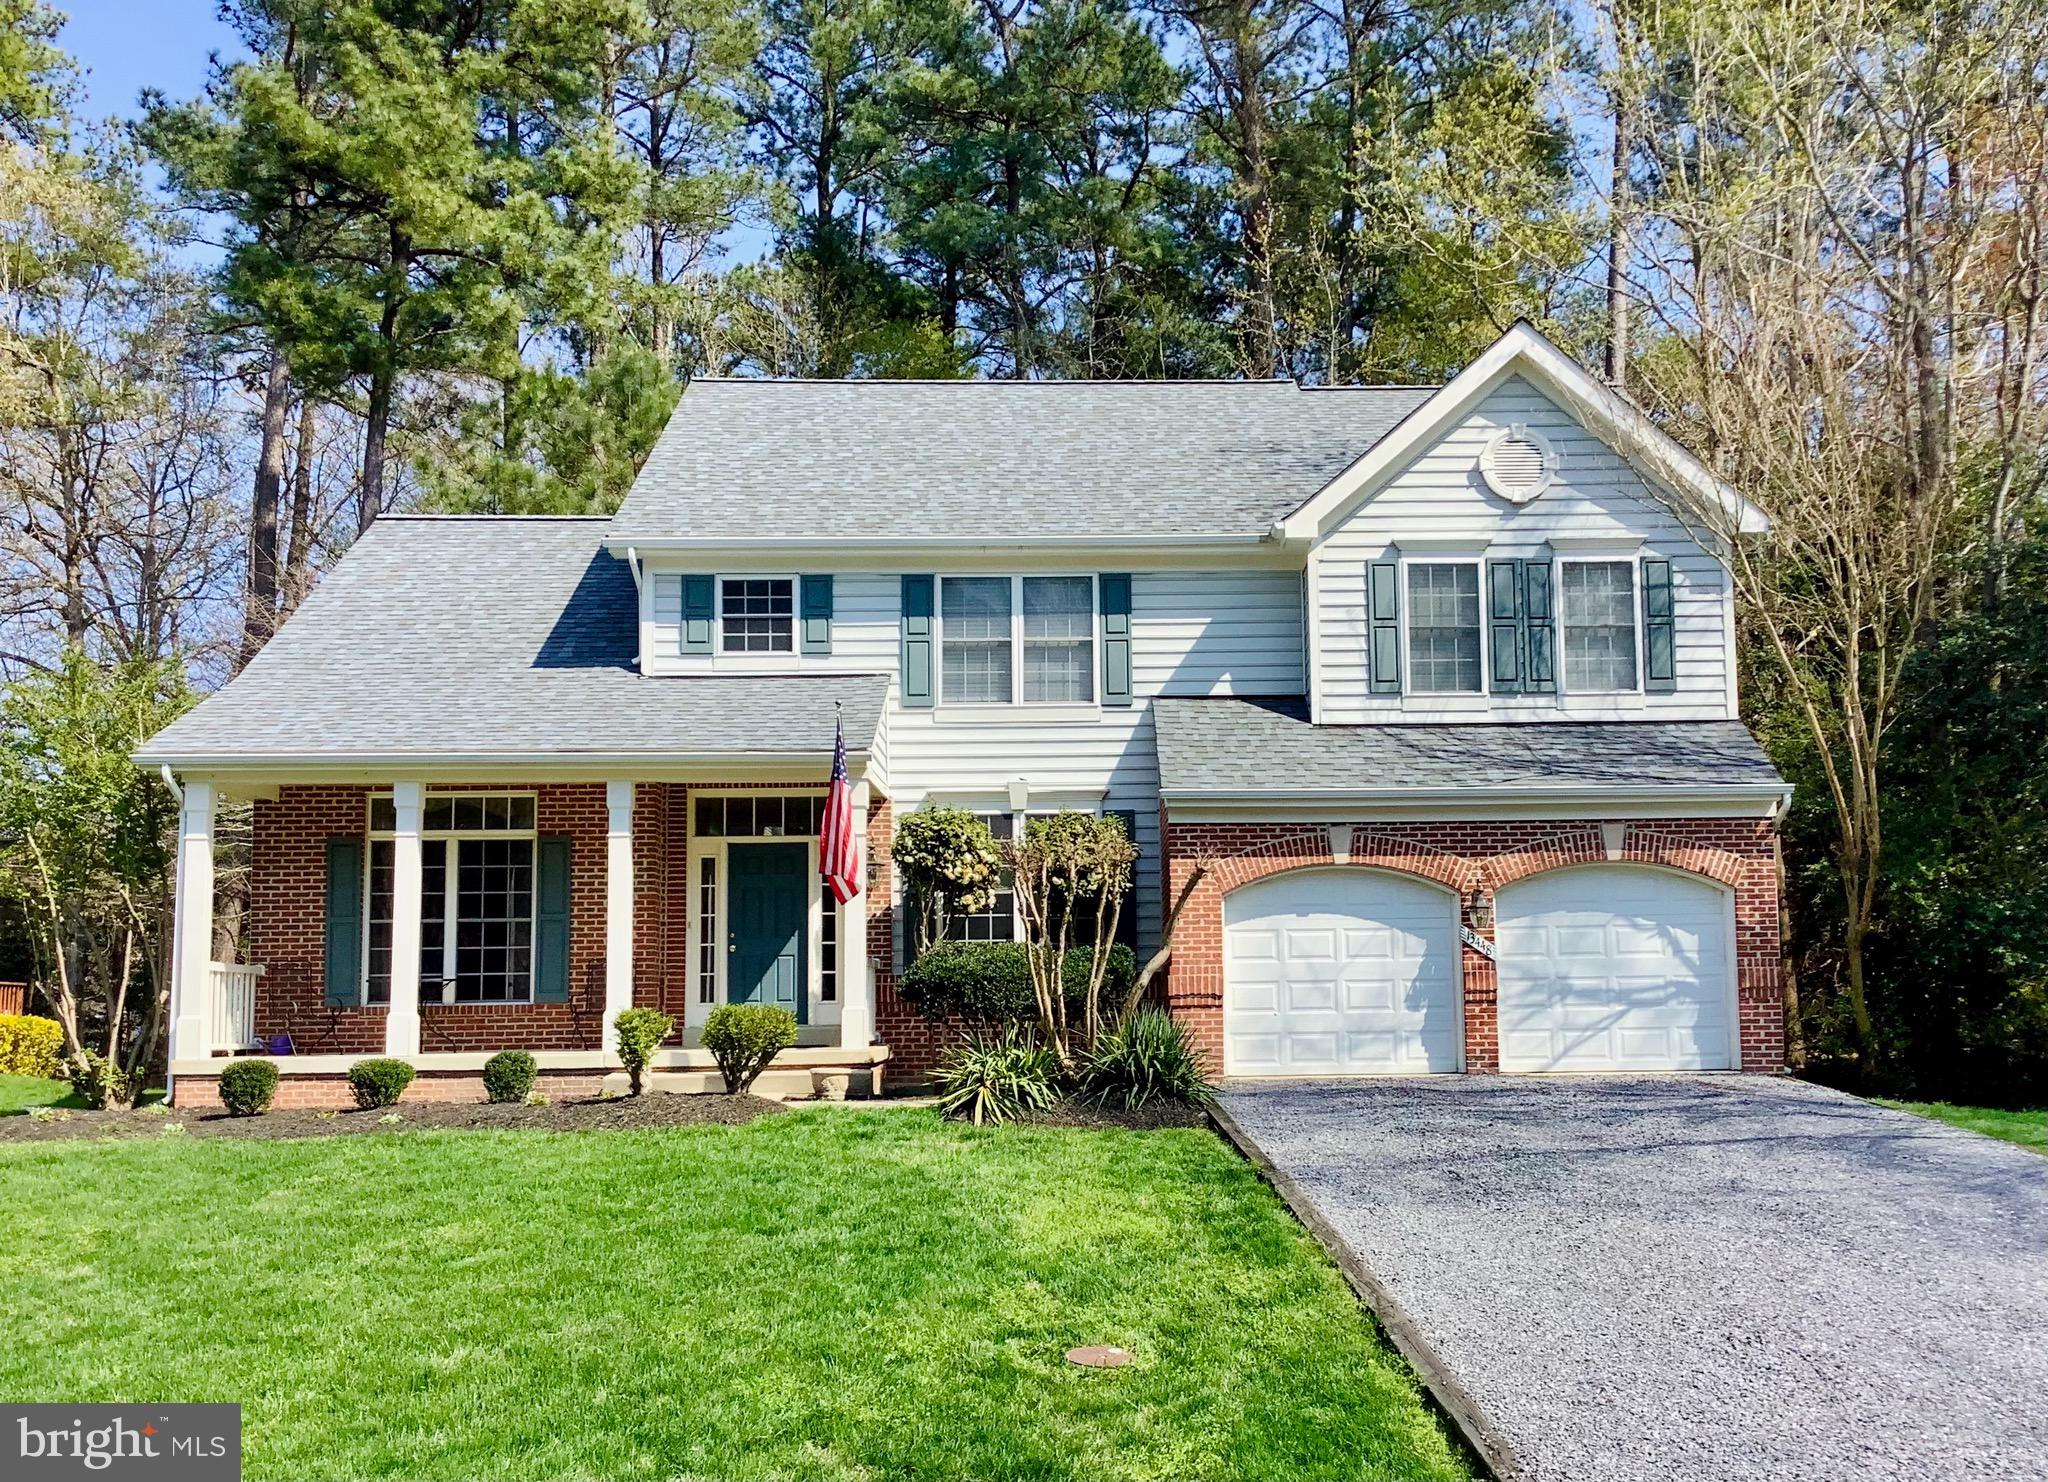 Welcome home to Harbor Point! Charming 4 bedroom 2 1/2 bath colonial is nestled back to the wooded a